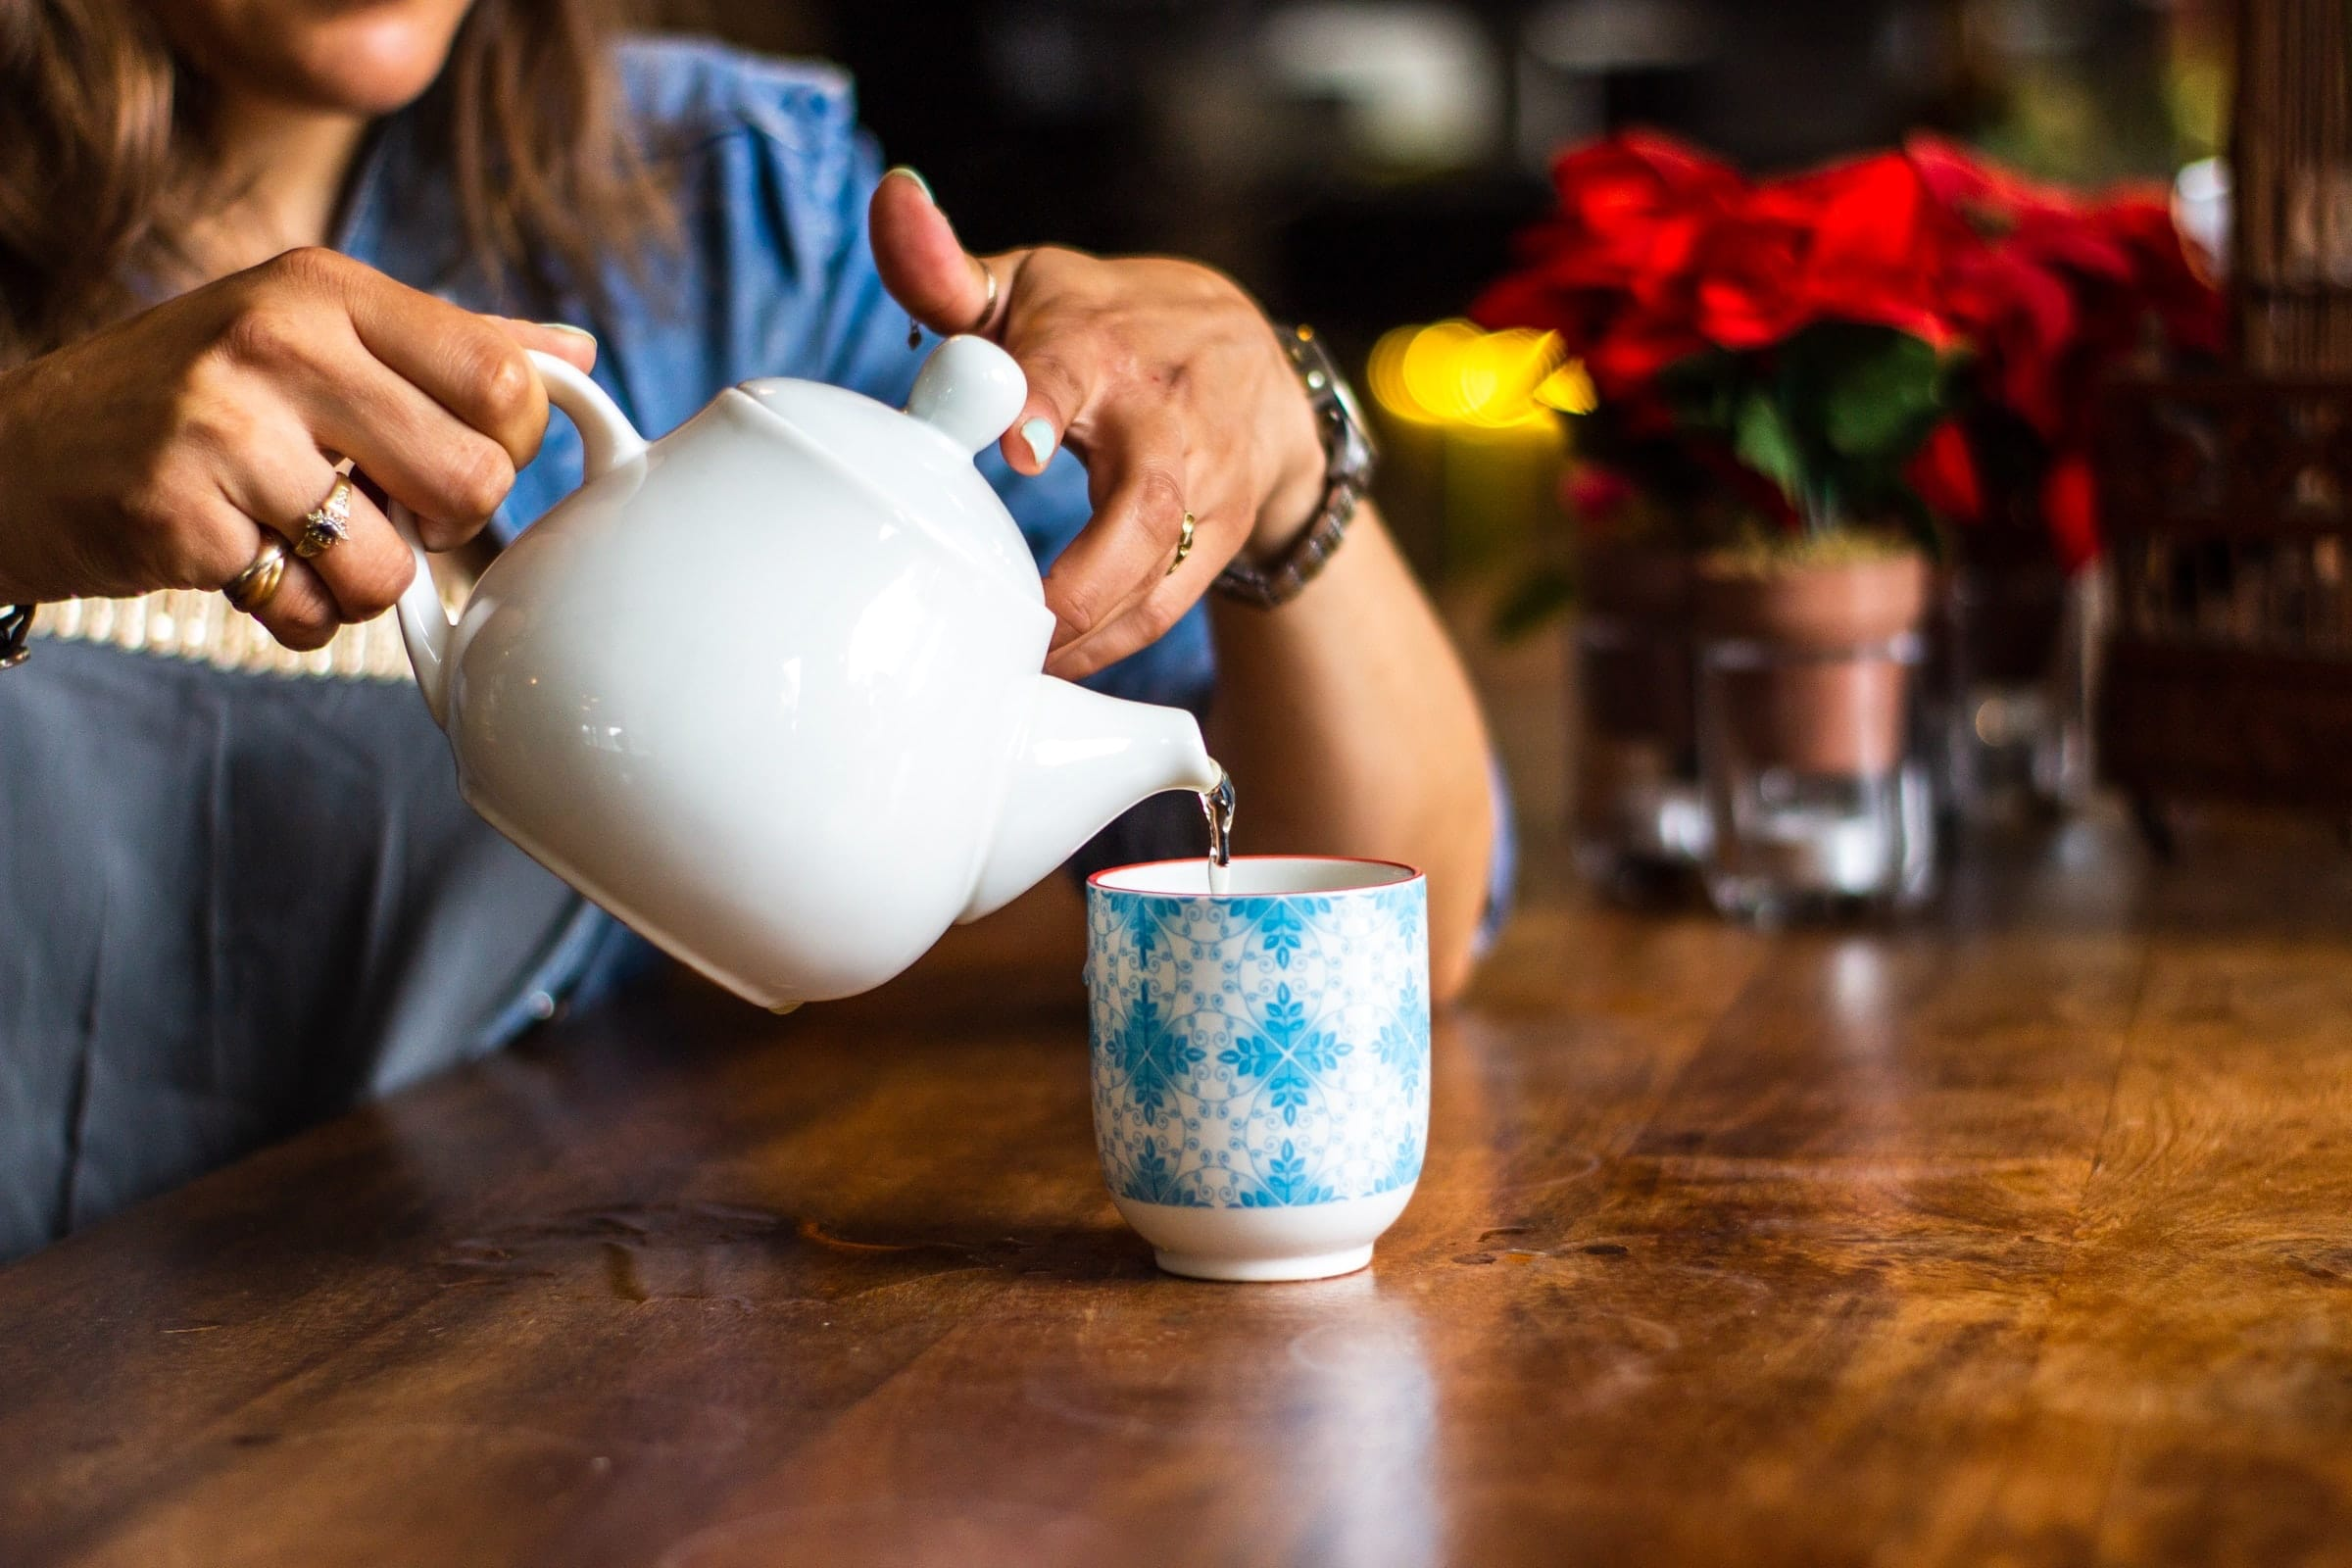 woman pouring moon water from a white tea pot into a blue and white mug